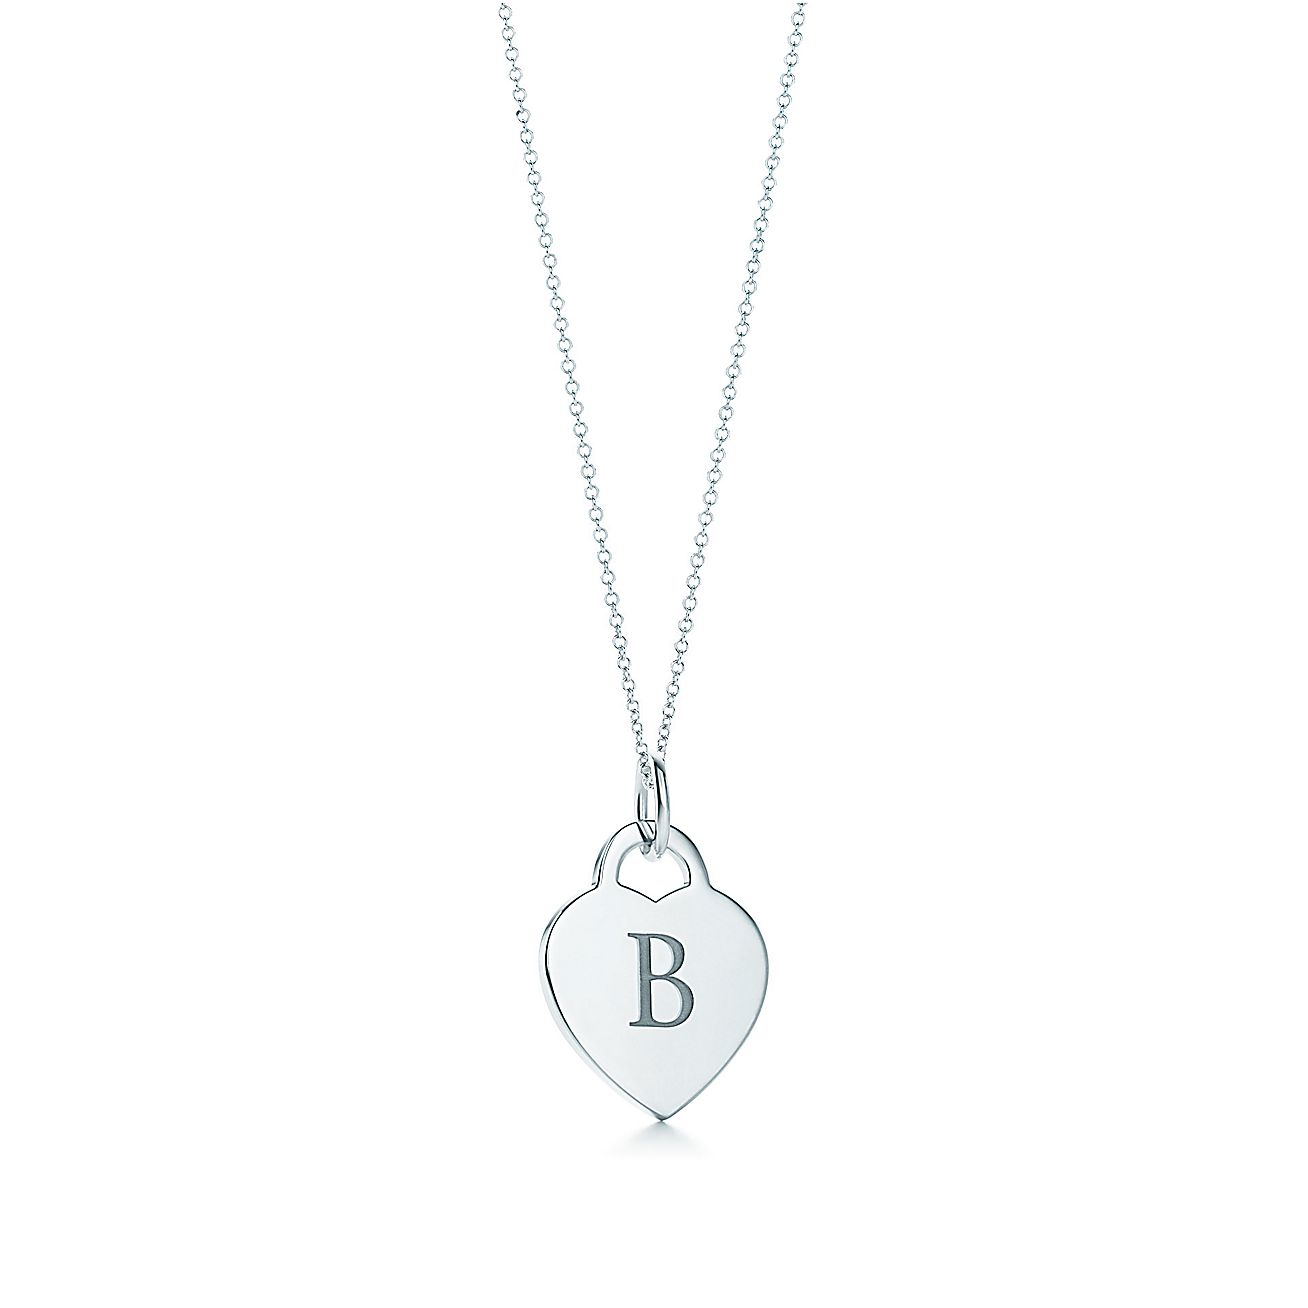 alphabet heart tag letter charm in silver on a chain With alphabet heart tag letter charm and chain tiffany